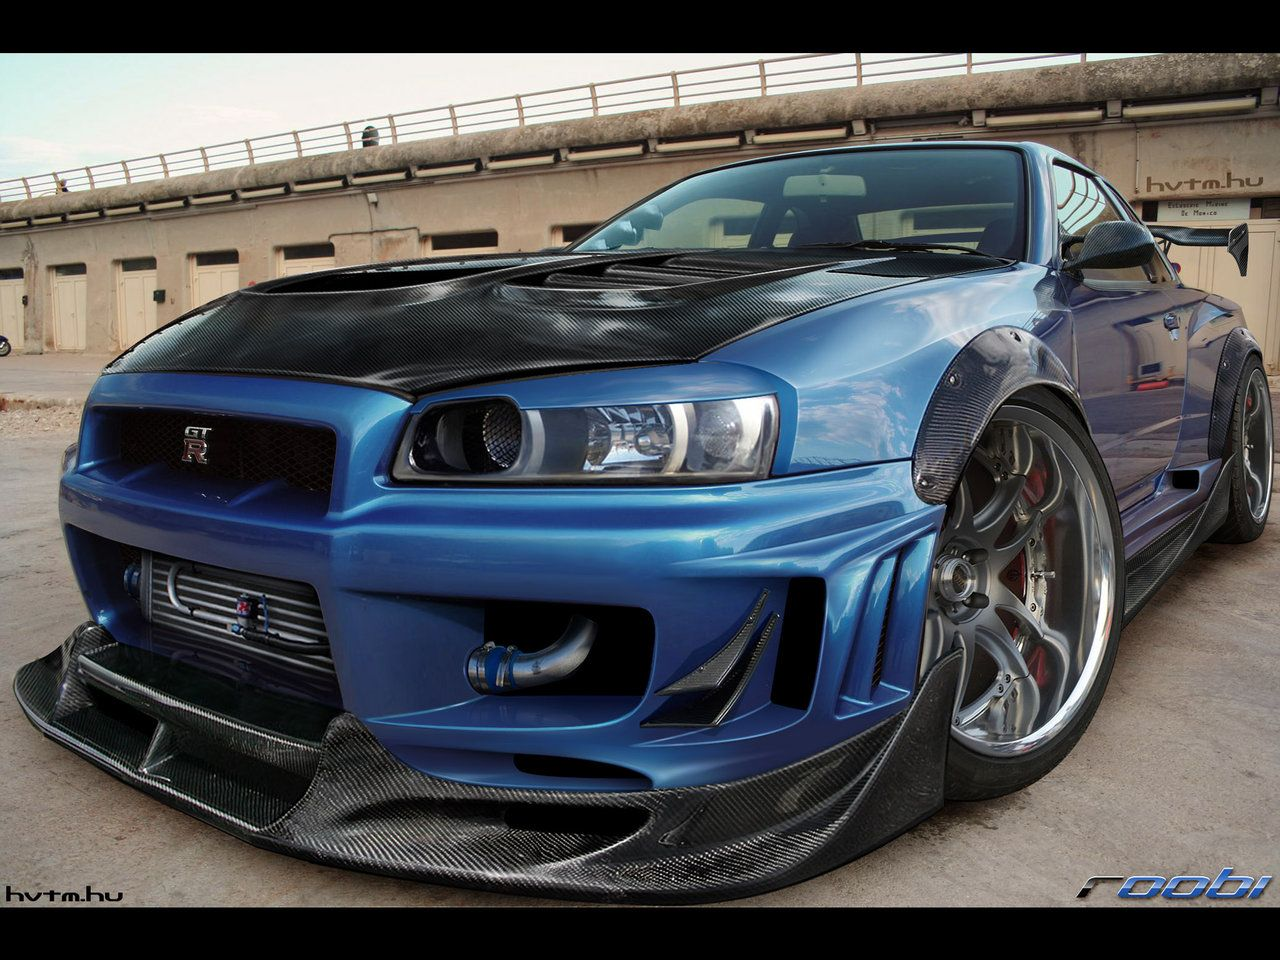 cool cars nissan r34 gt r virtual tuning skyline wallpapers download photo nissan. Black Bedroom Furniture Sets. Home Design Ideas